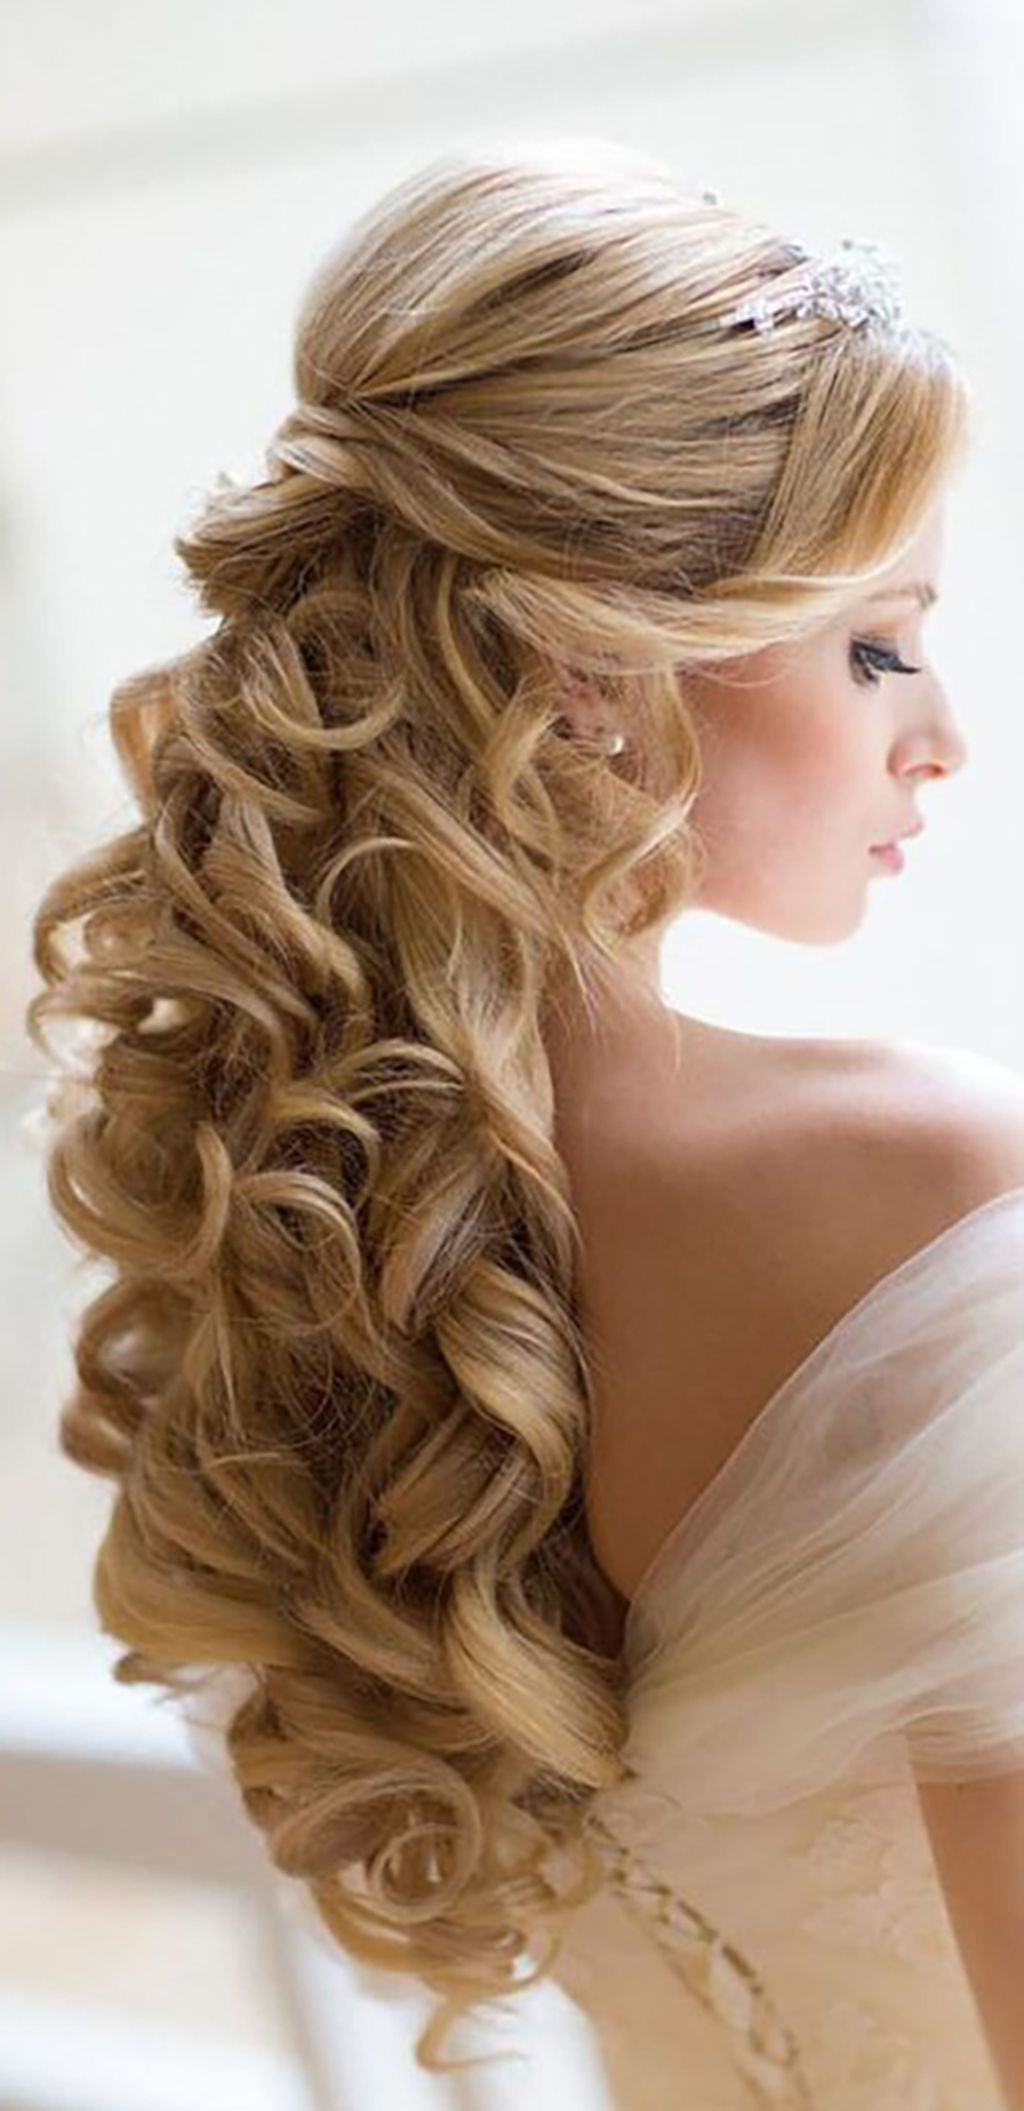 86 classy wedding hairstyle ideas for long hair women | weddings